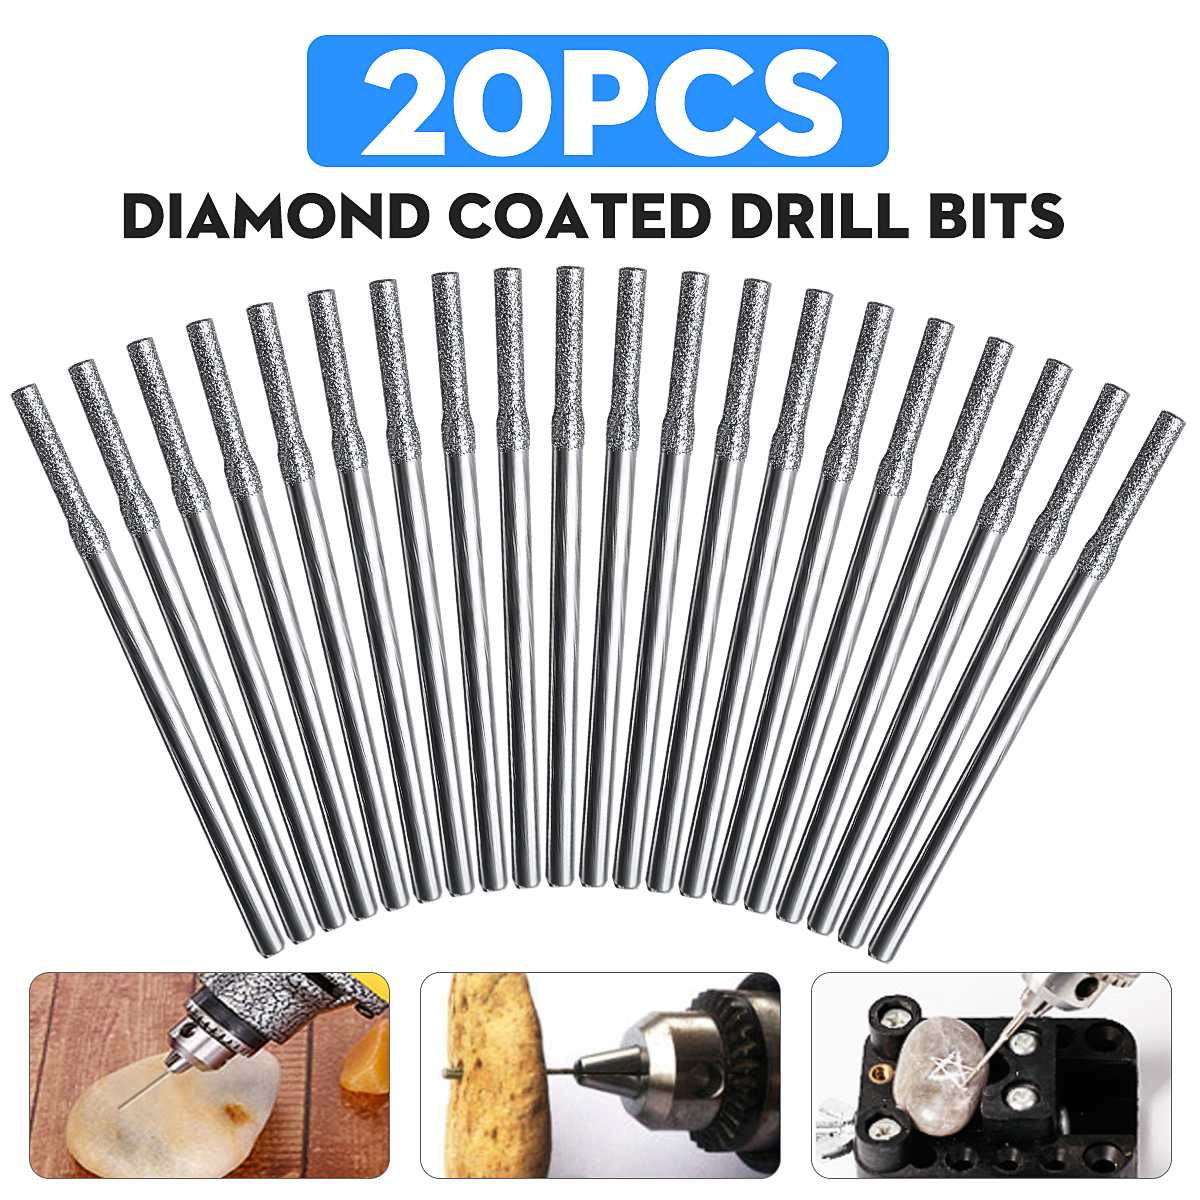 20PCS 2mm Diamond Coated Hole Saw Solid Drill Bit For Glass Tile Ceramic Marble Power Tools